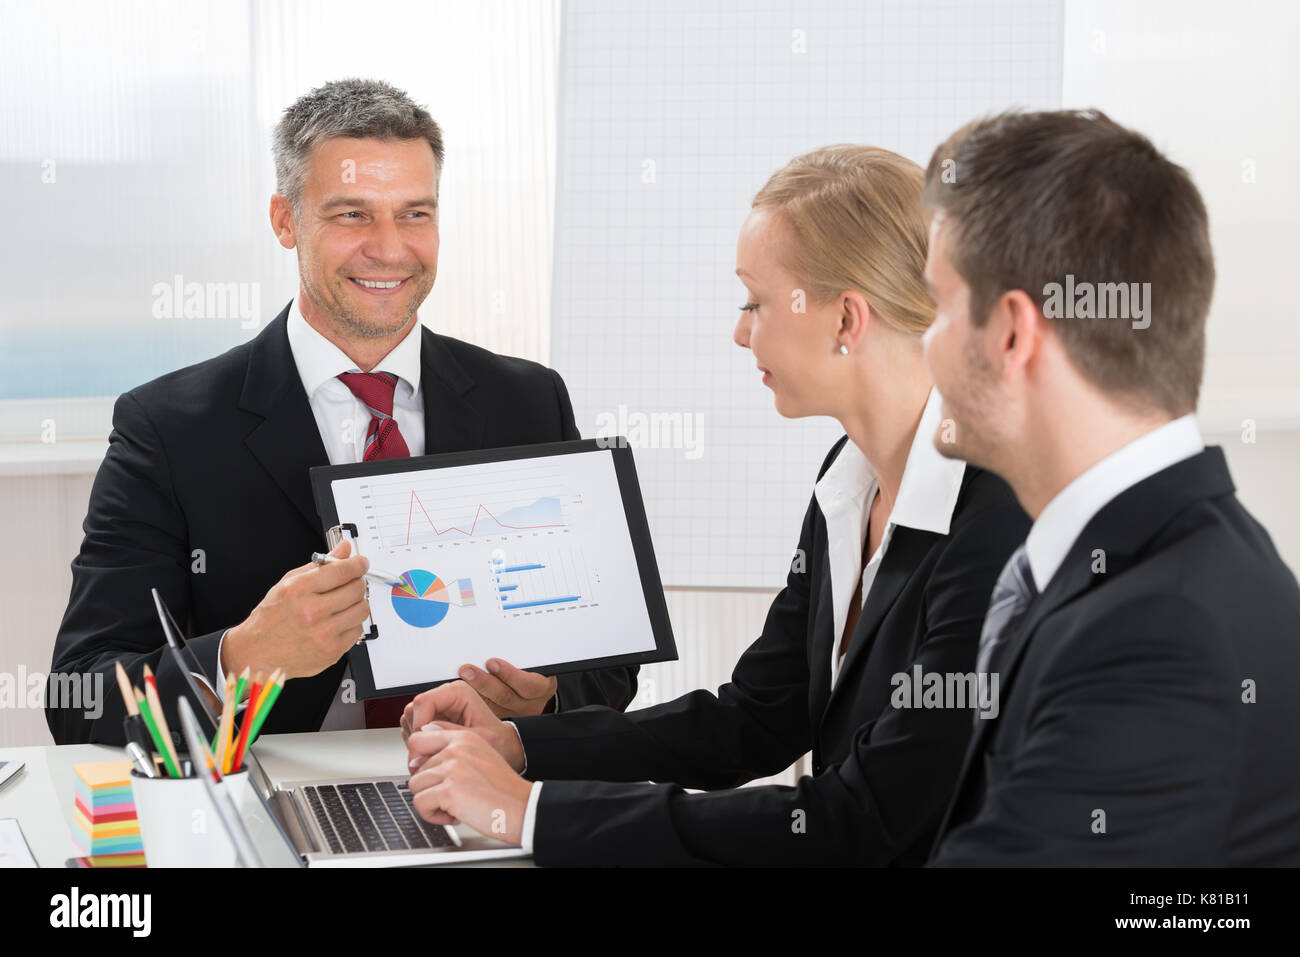 Mature Businessman Explaining Graph To His Co- Workers In Office - Stock Image